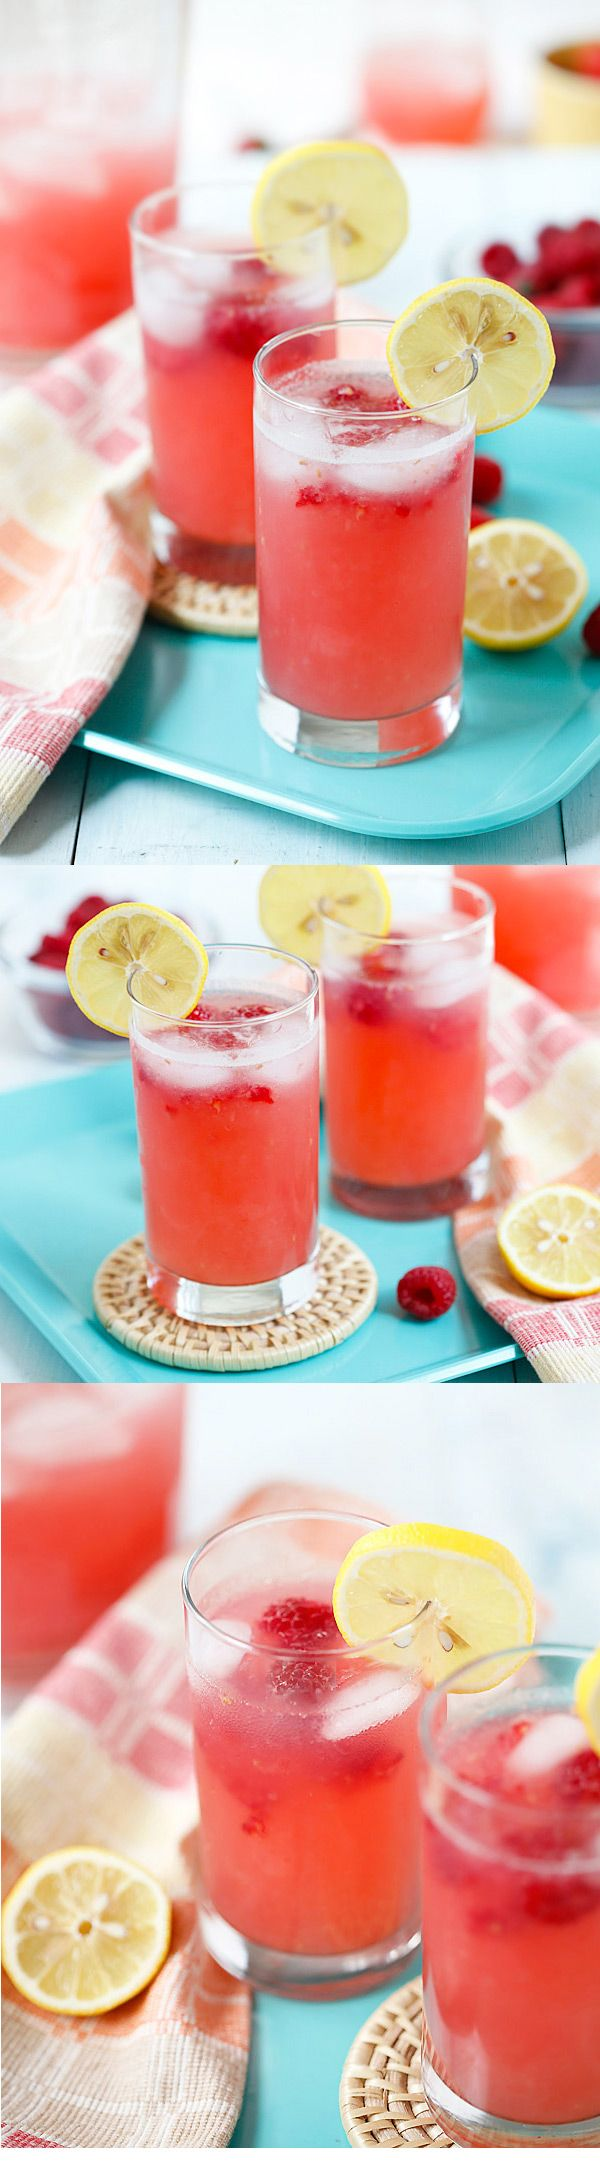 Raspberry Lemonade – sweet, refreshing and thirst-quenching lemonade with raspberry. So easy to make and takes only 10 minutes to make! | rasamalaysia.com